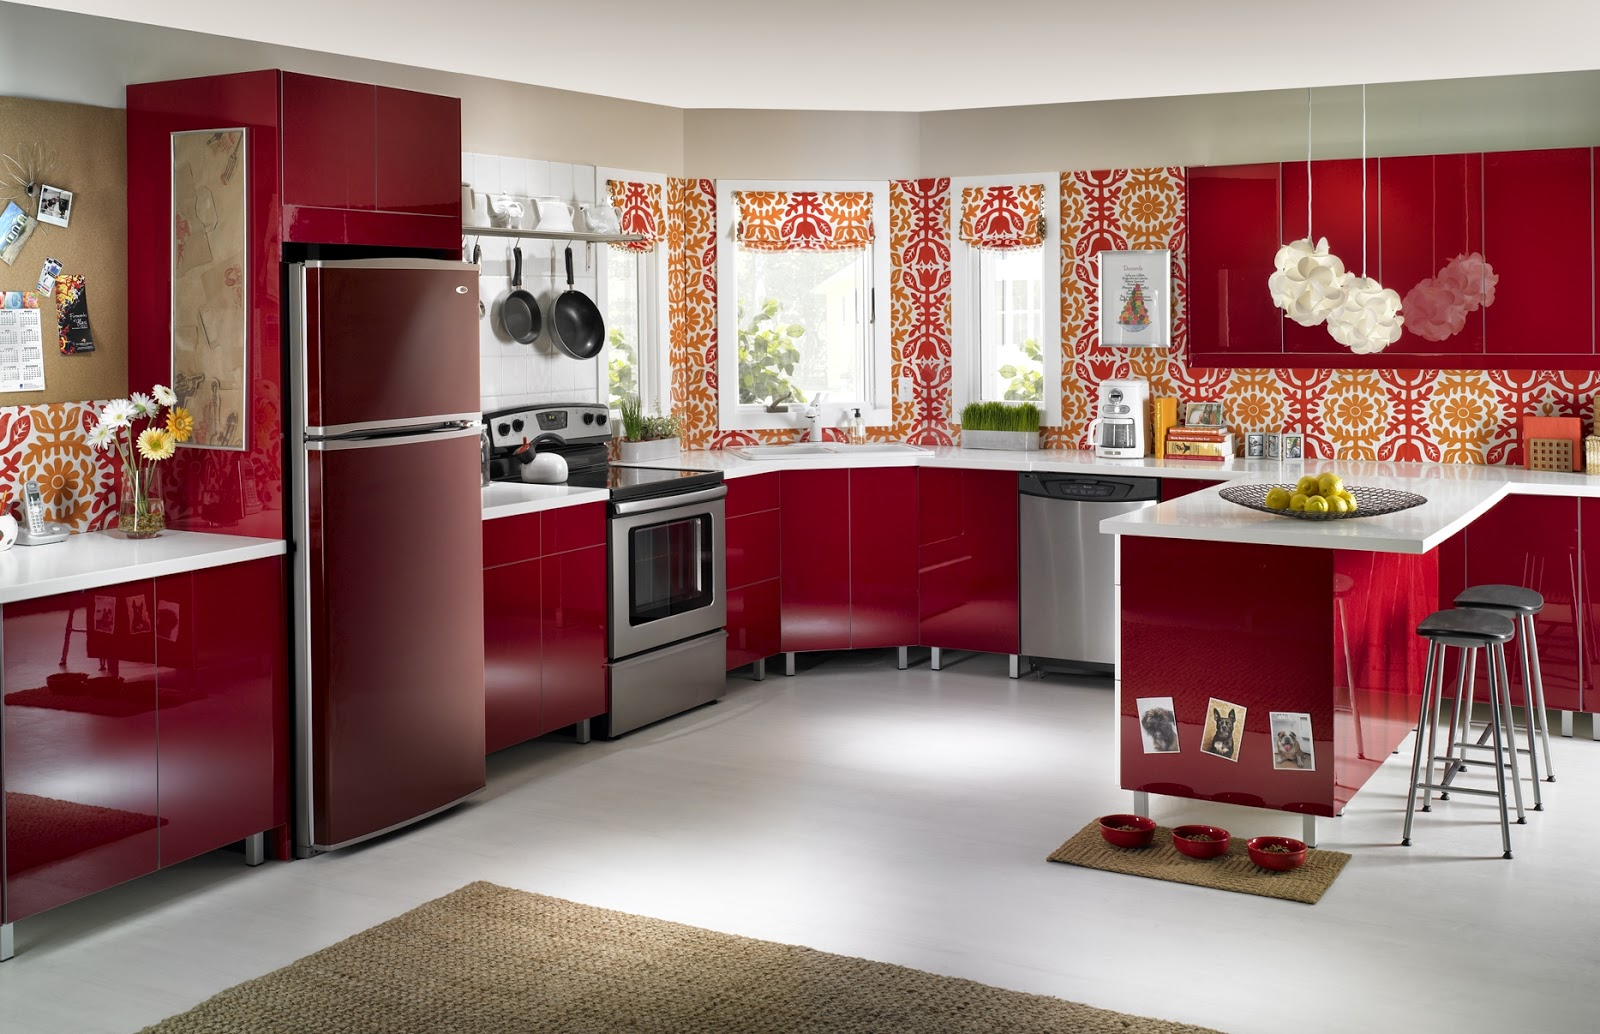 houston kitchen appliances and custom cabinetry in texas october 2014